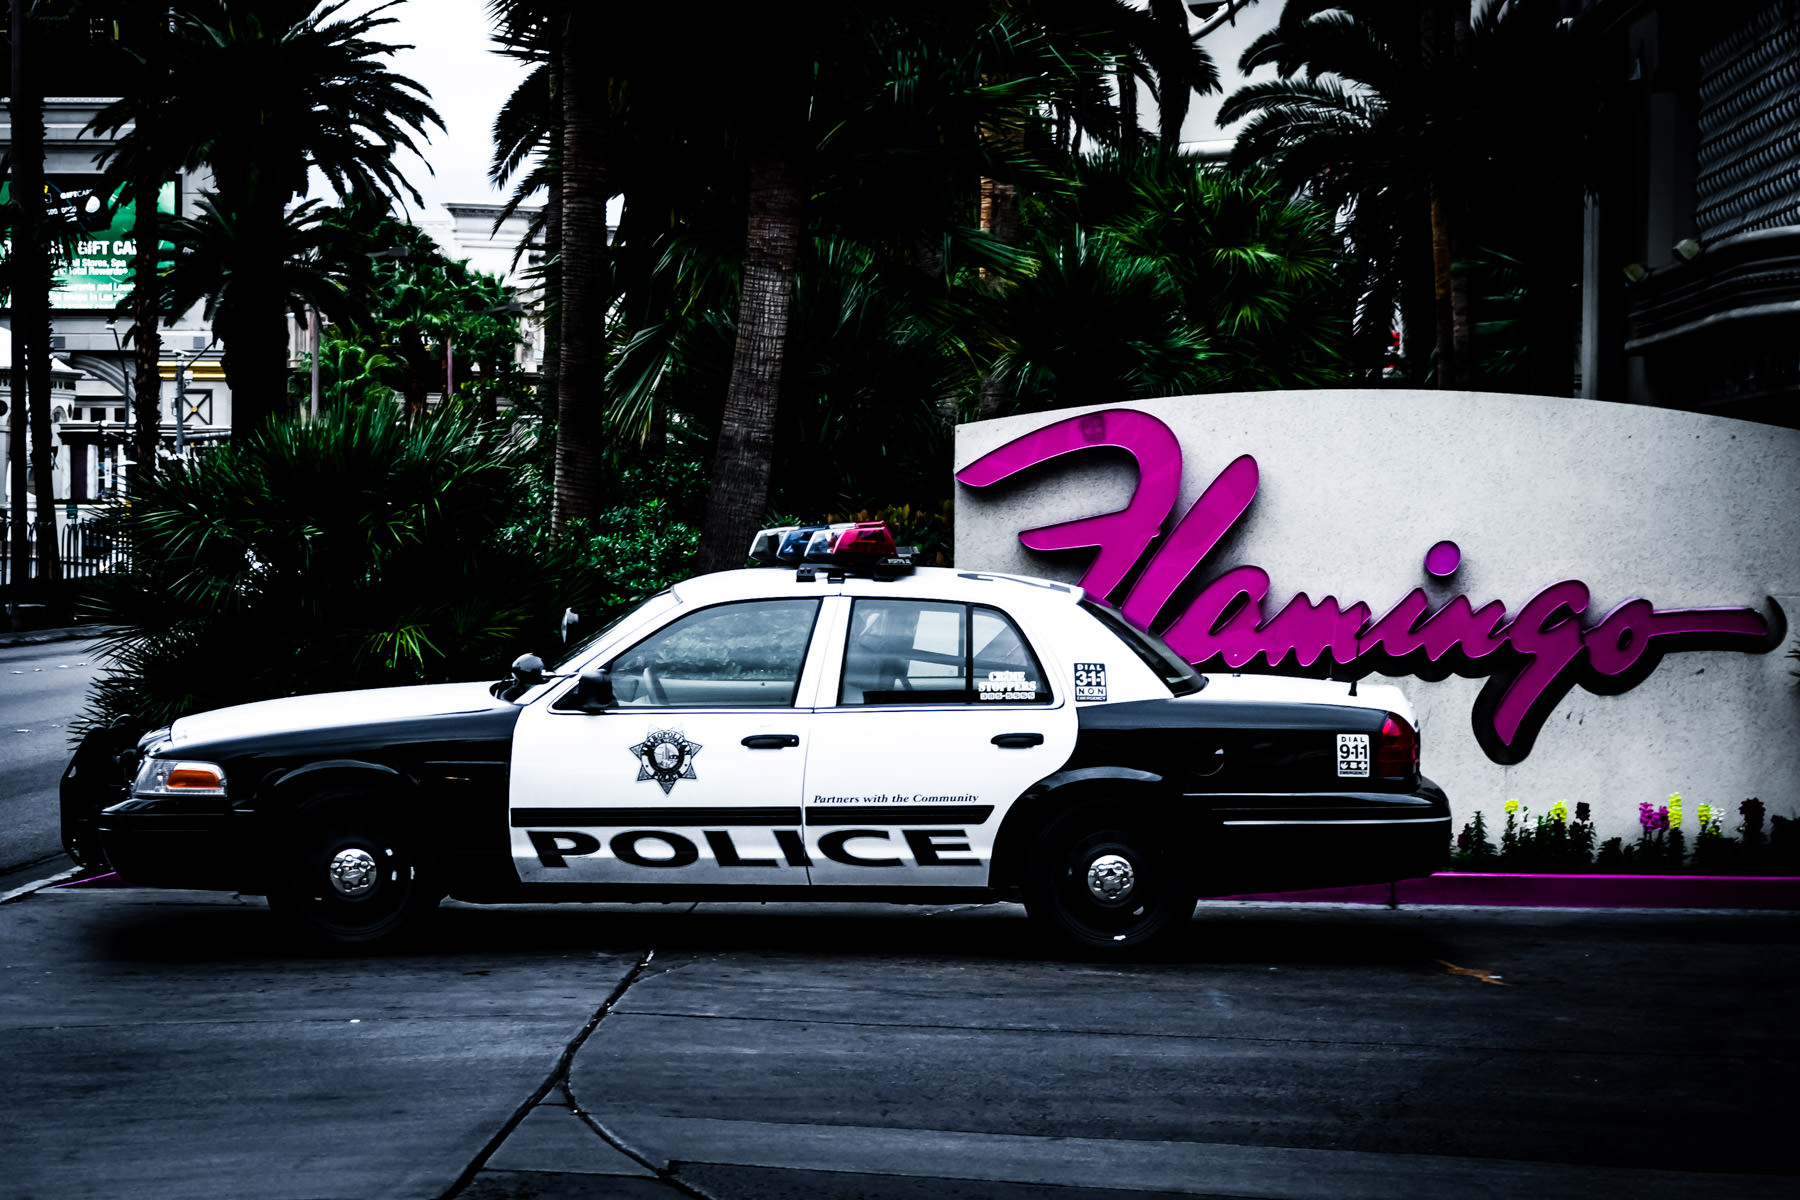 A cop car parked outside of the Flamingo Hotel and Casino, Las Vegas.